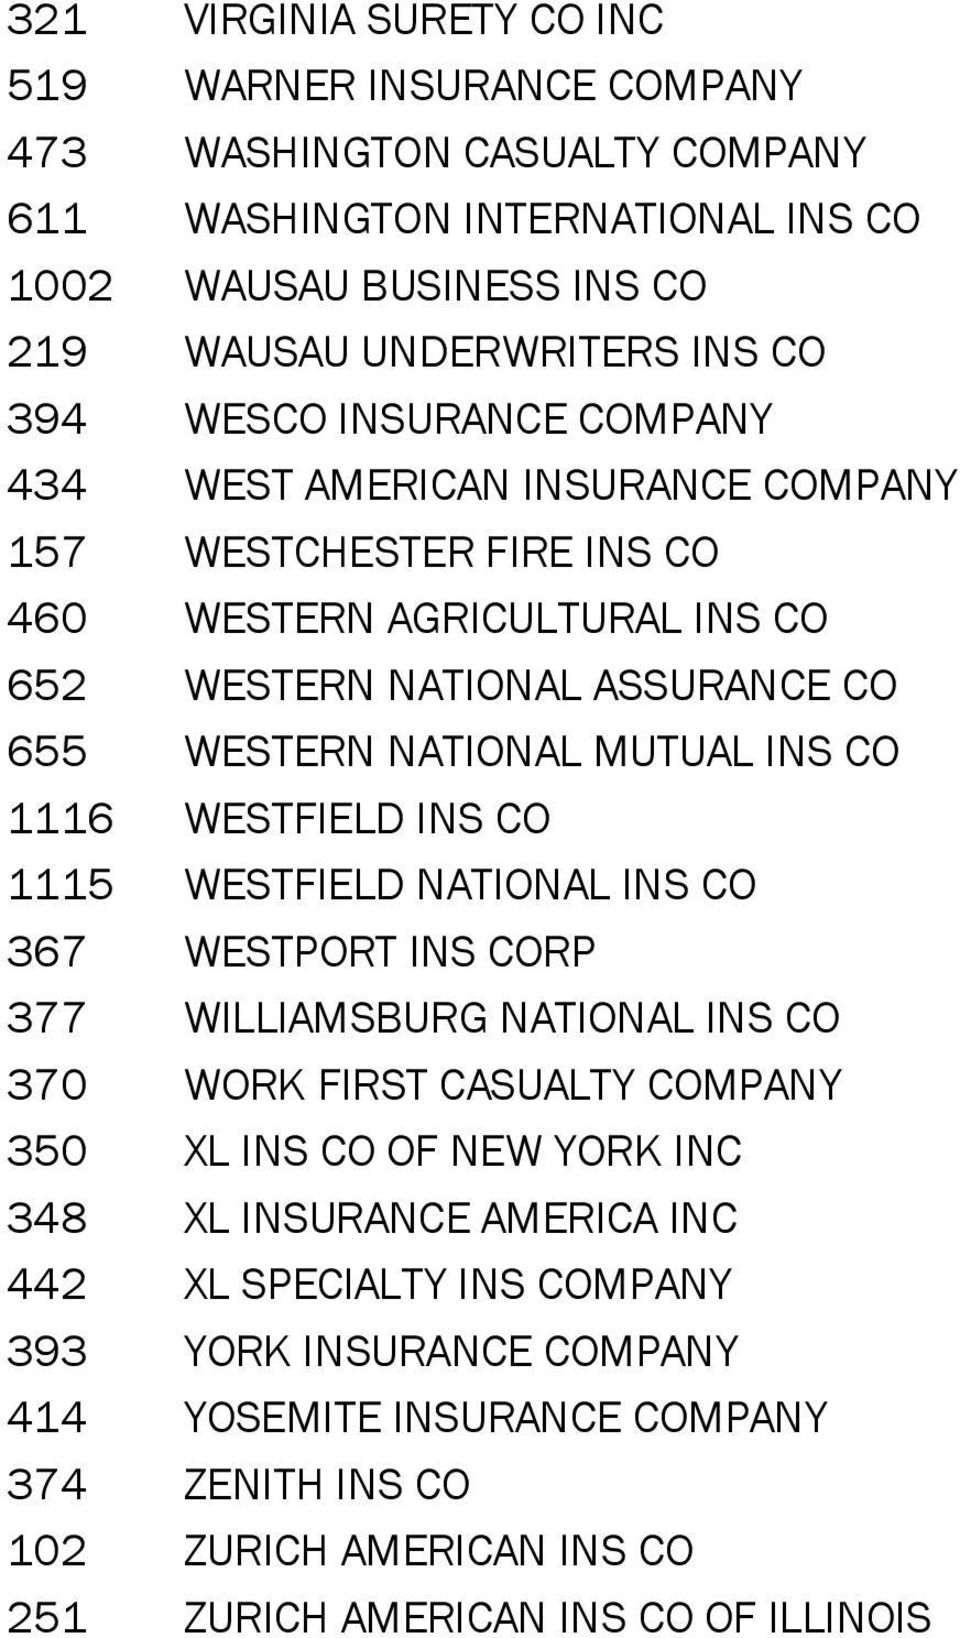 CO 1116 WESTFIELD INS CO 1115 WESTFIELD NATIONAL INS CO 367 WESTPORT INS CORP 377 WILLIAMSBURG NATIONAL INS CO 370 WORK FIRST CASUALTY 350 XL INS CO OF NEW YORK INC 348